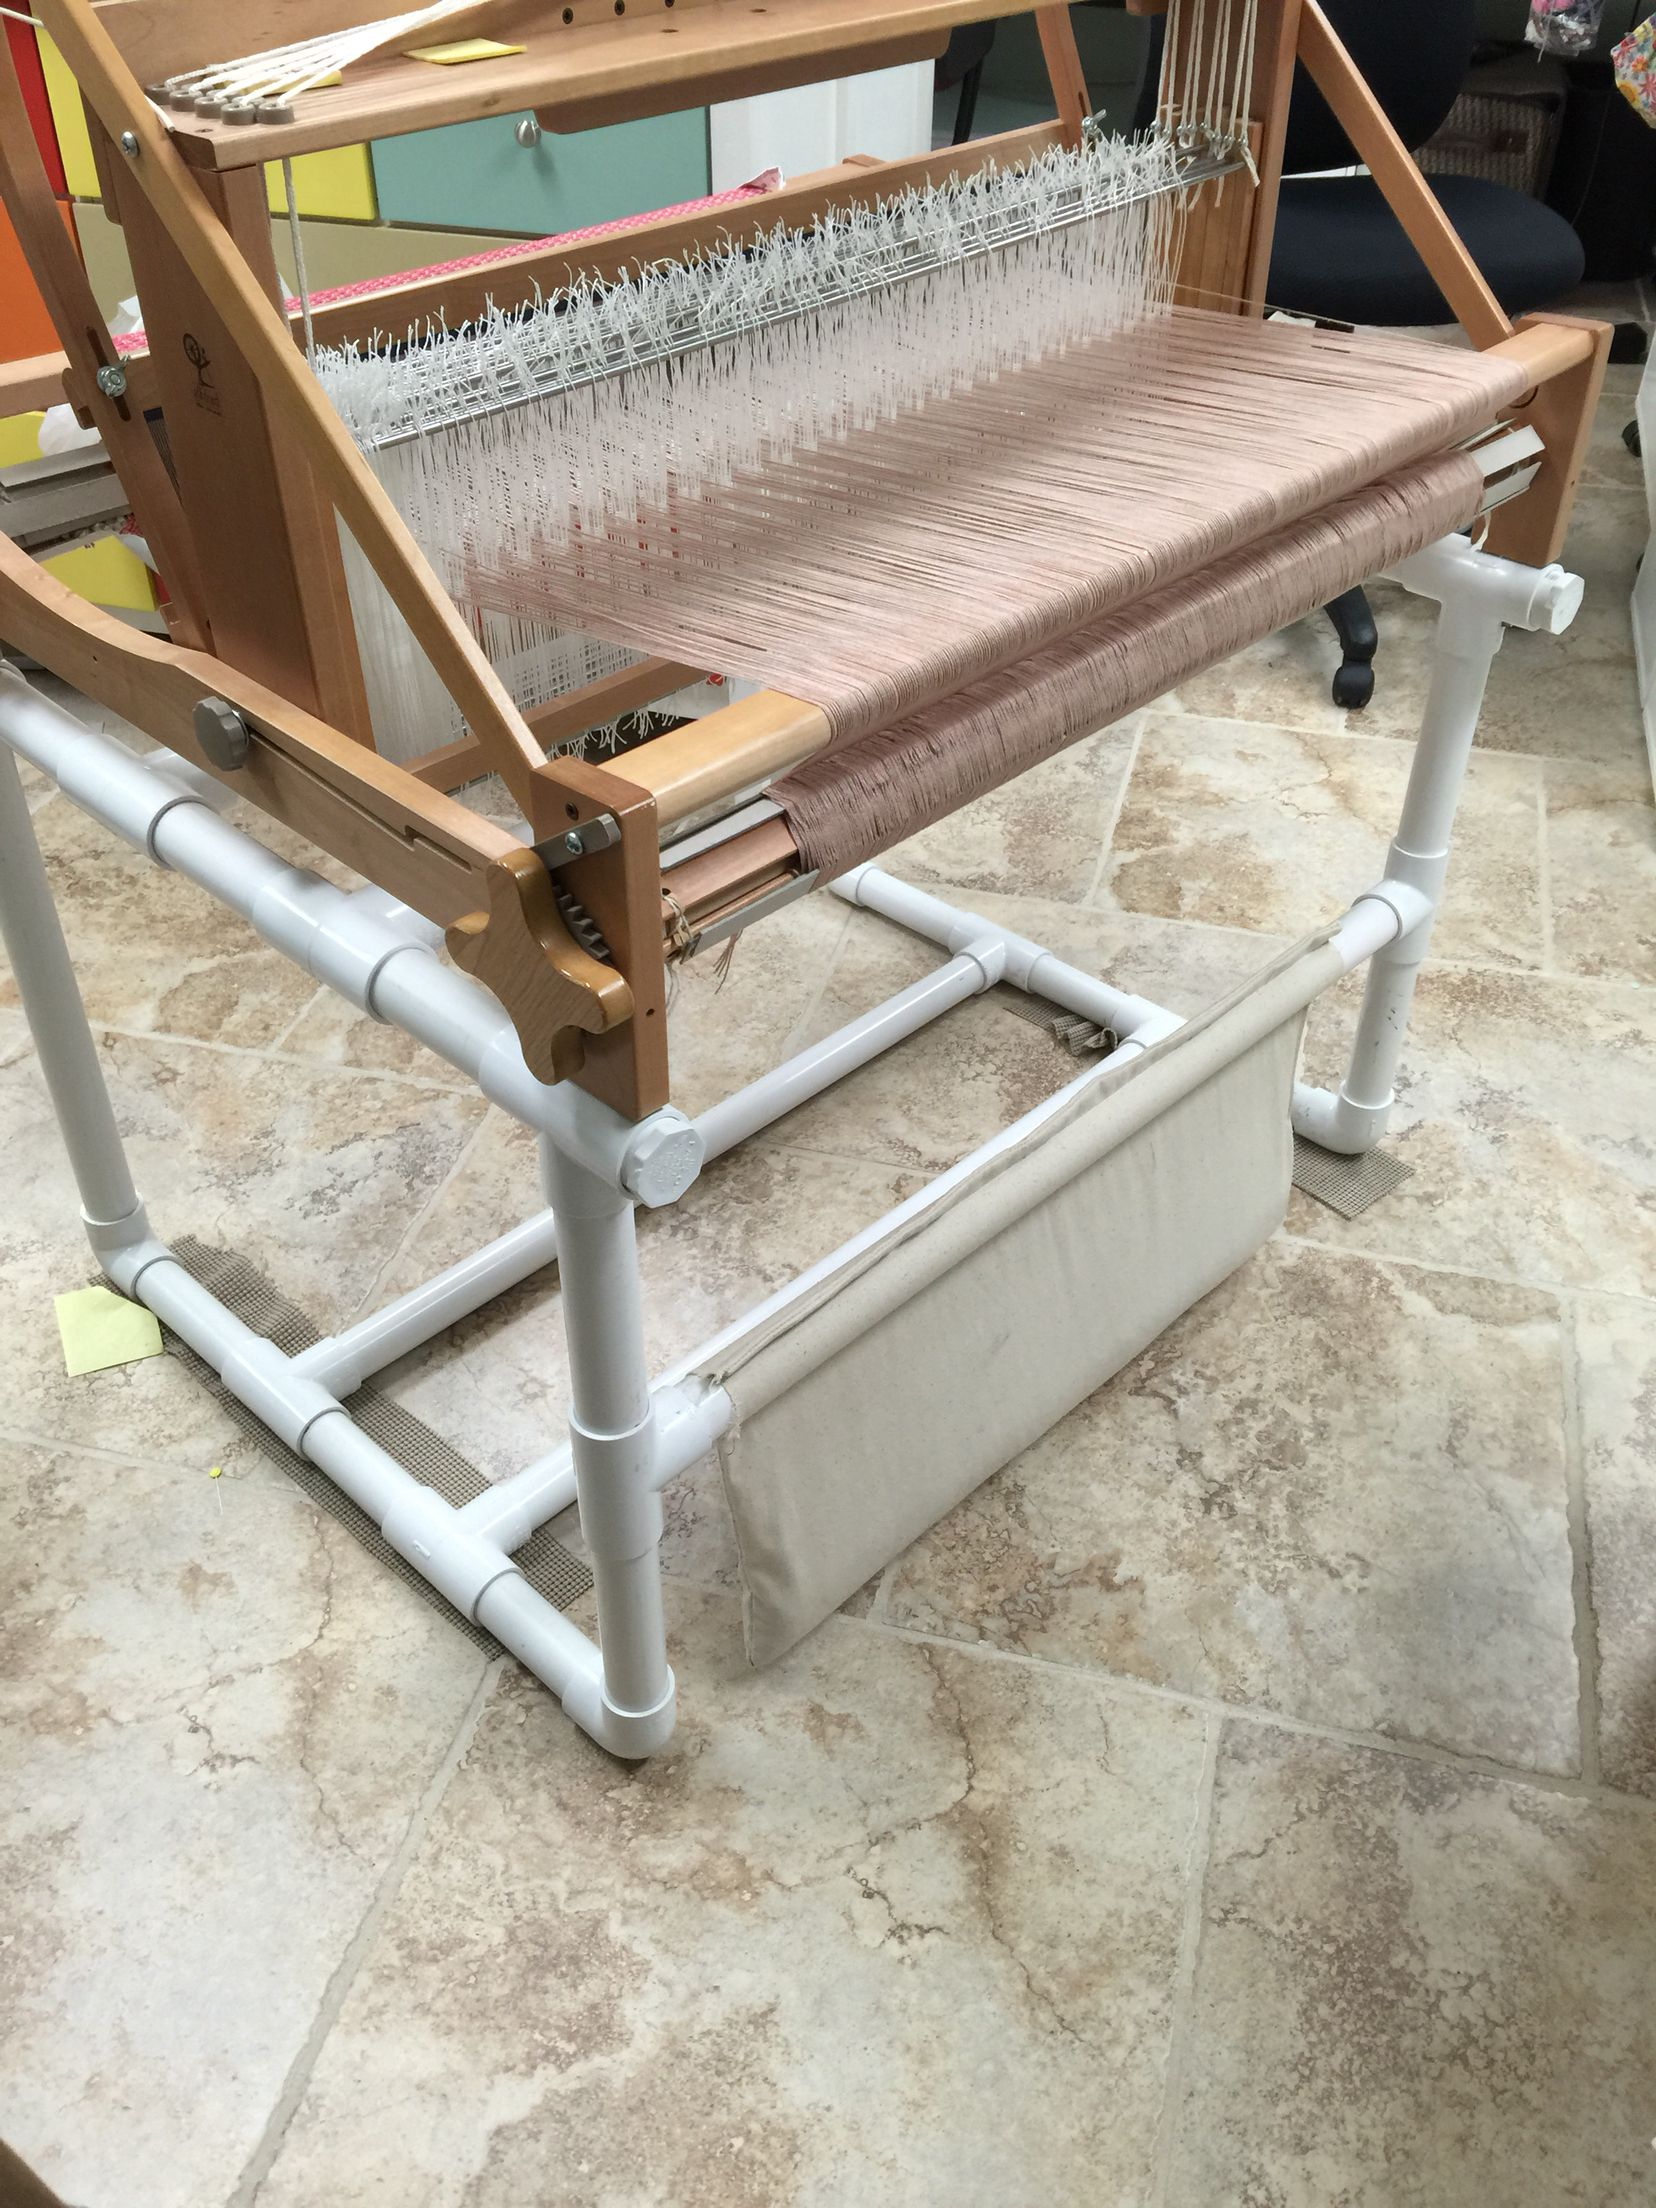 Back Of Pvc Loom Stand With A Weight Belt I Made And Used Aquarium